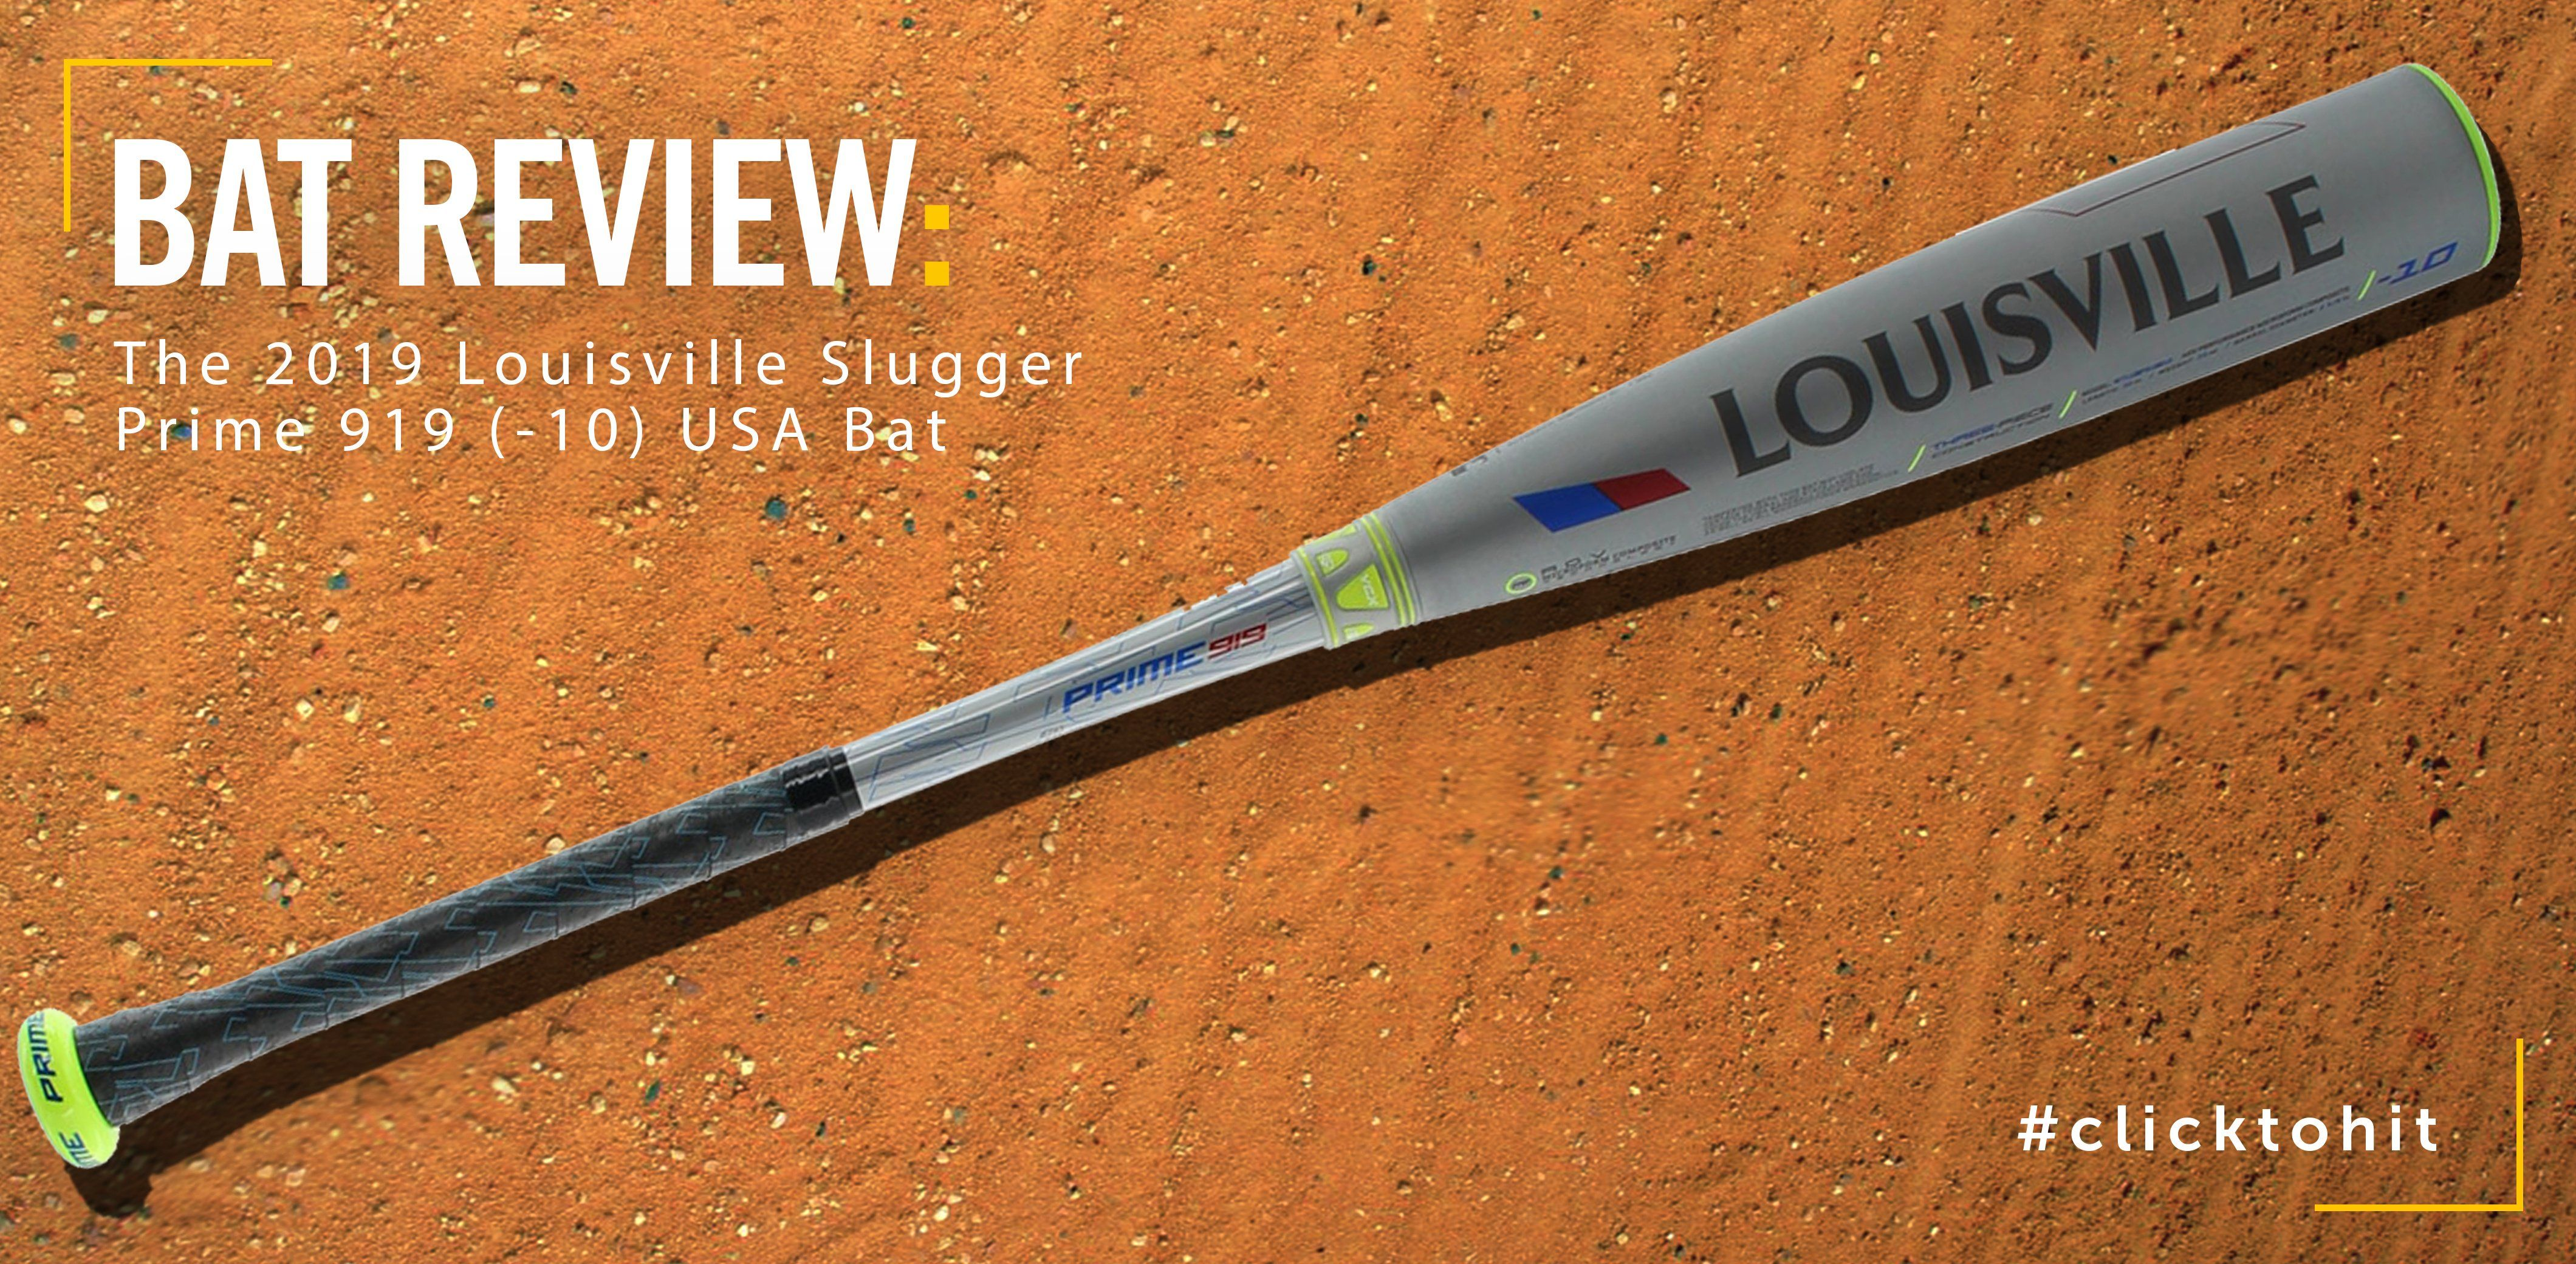 Bat Review: 2019 Louisville Slugger Prime 919 (-10) USA Bat